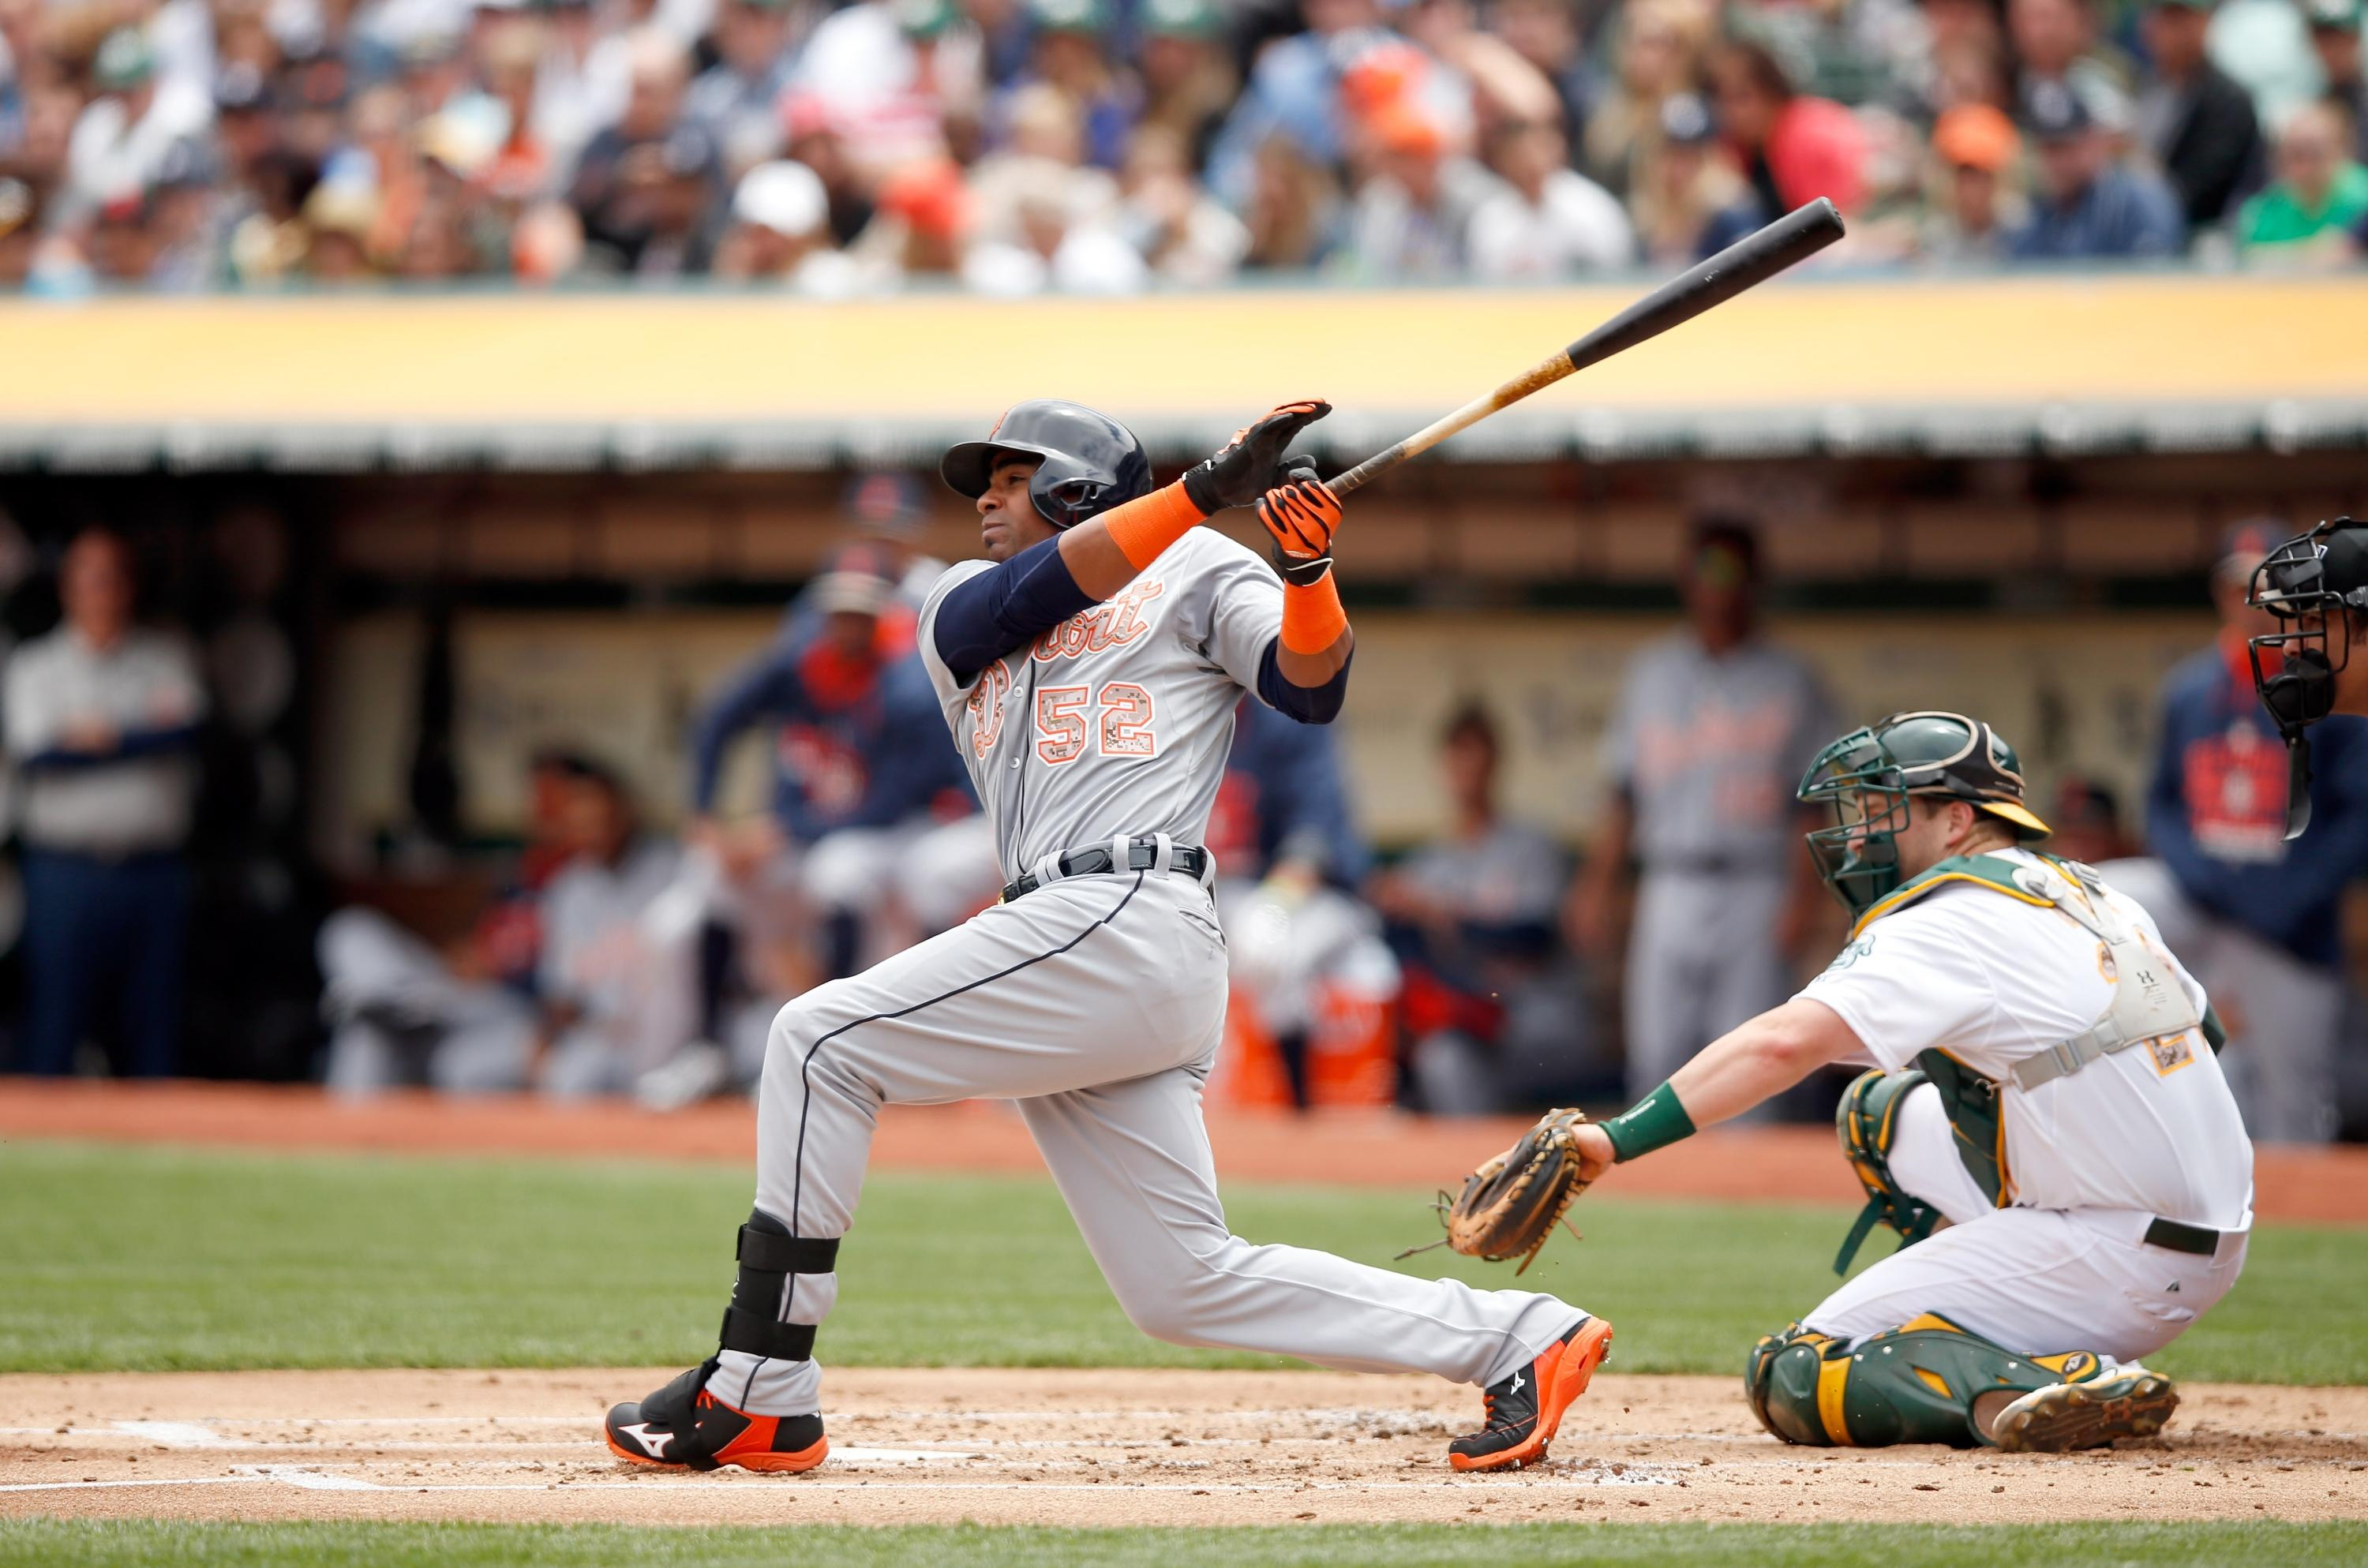 Yoenis Cespedes on A's: 'Don't they want to win a championship?'